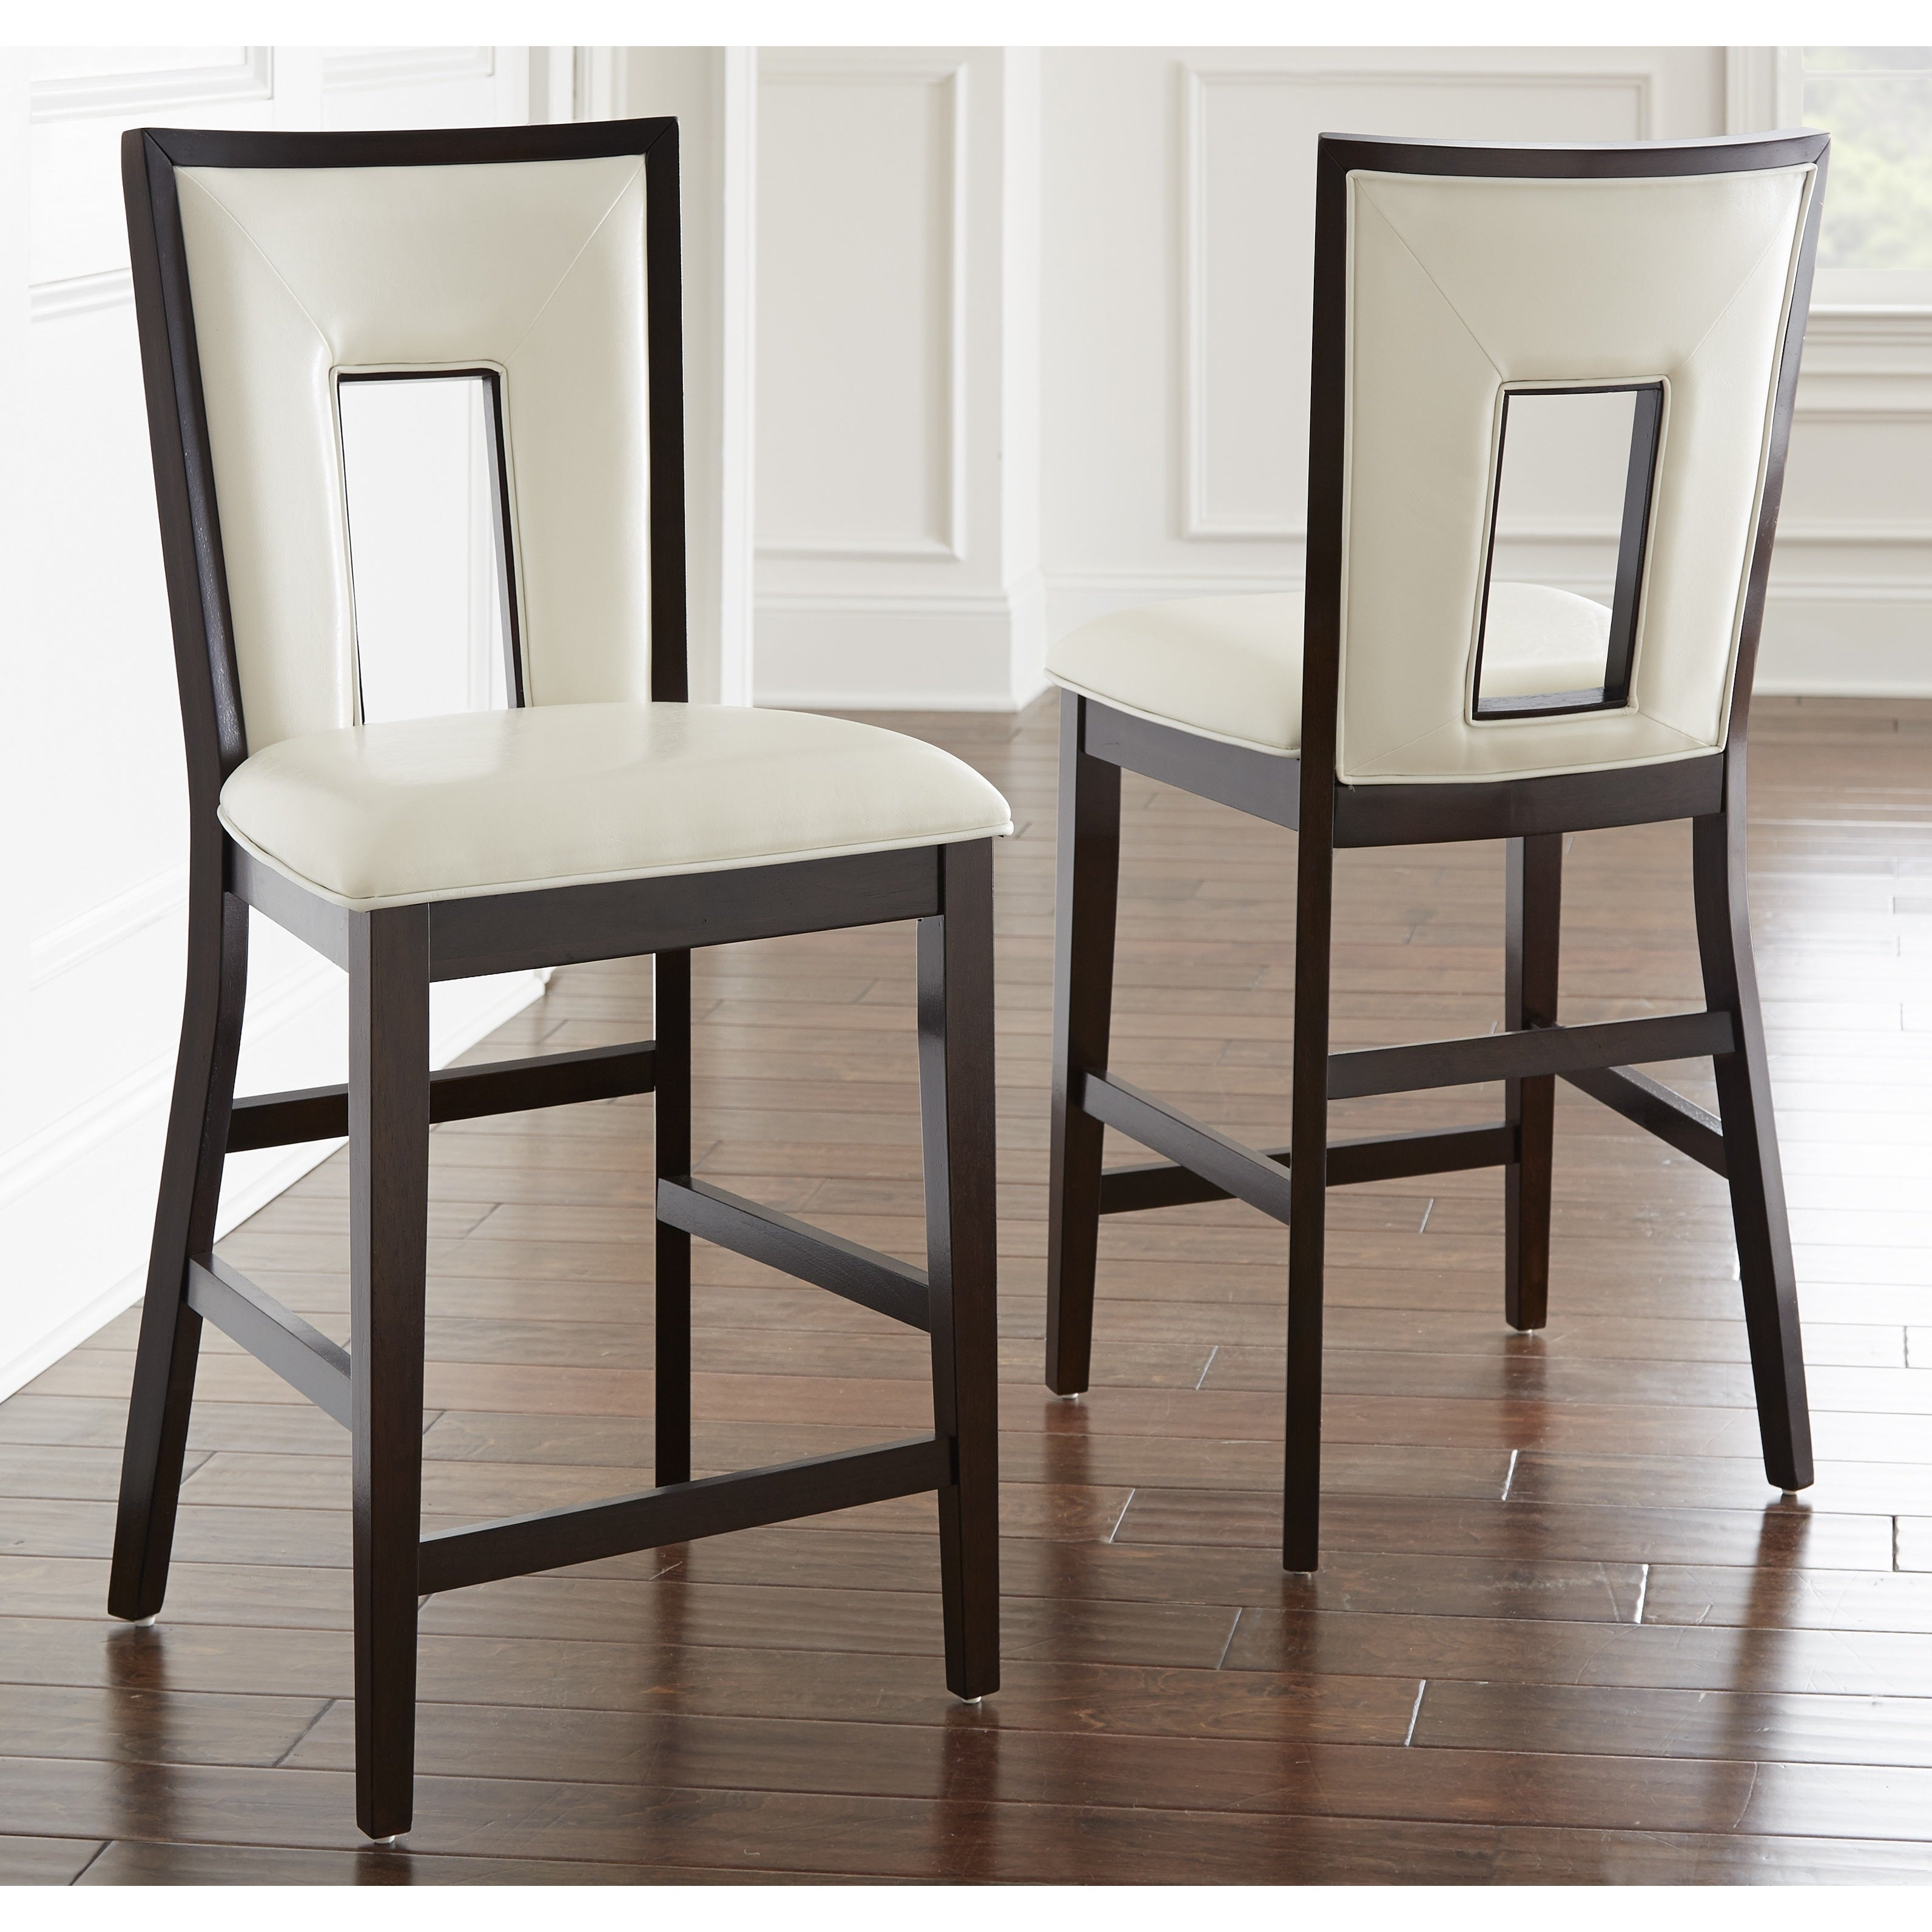 shop greyson living domino counter height keyhole chair set of 2 42 inches high x 19 inches. Black Bedroom Furniture Sets. Home Design Ideas